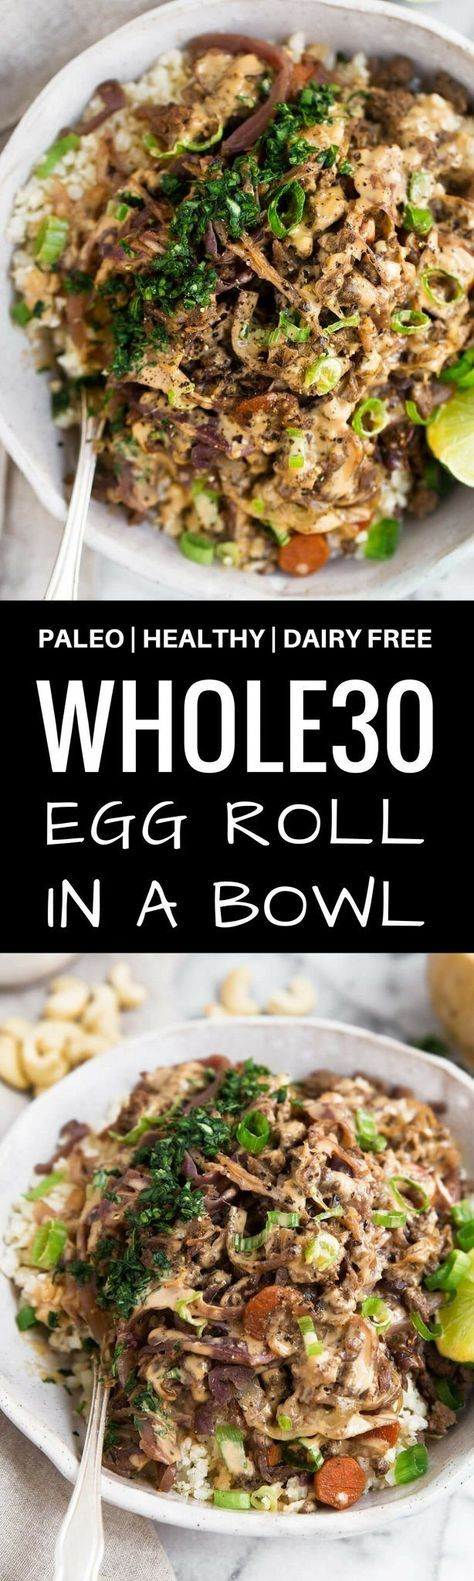 Whole30 Egg Roll in a Bowl. The most delicious one…